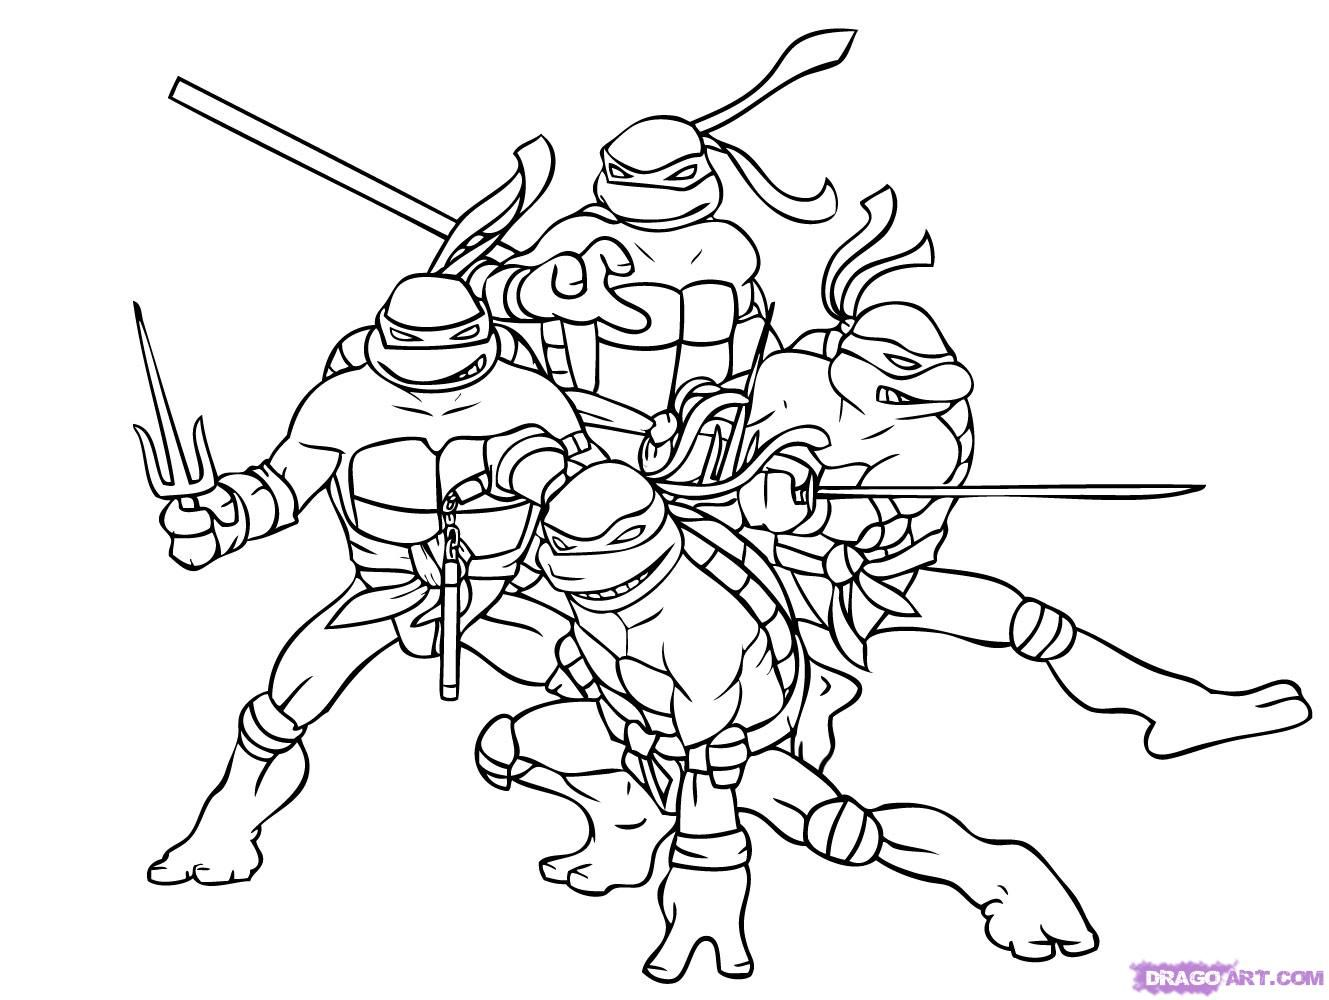 teenage mutant ninja turtles images to color | Teenage Mutant ...